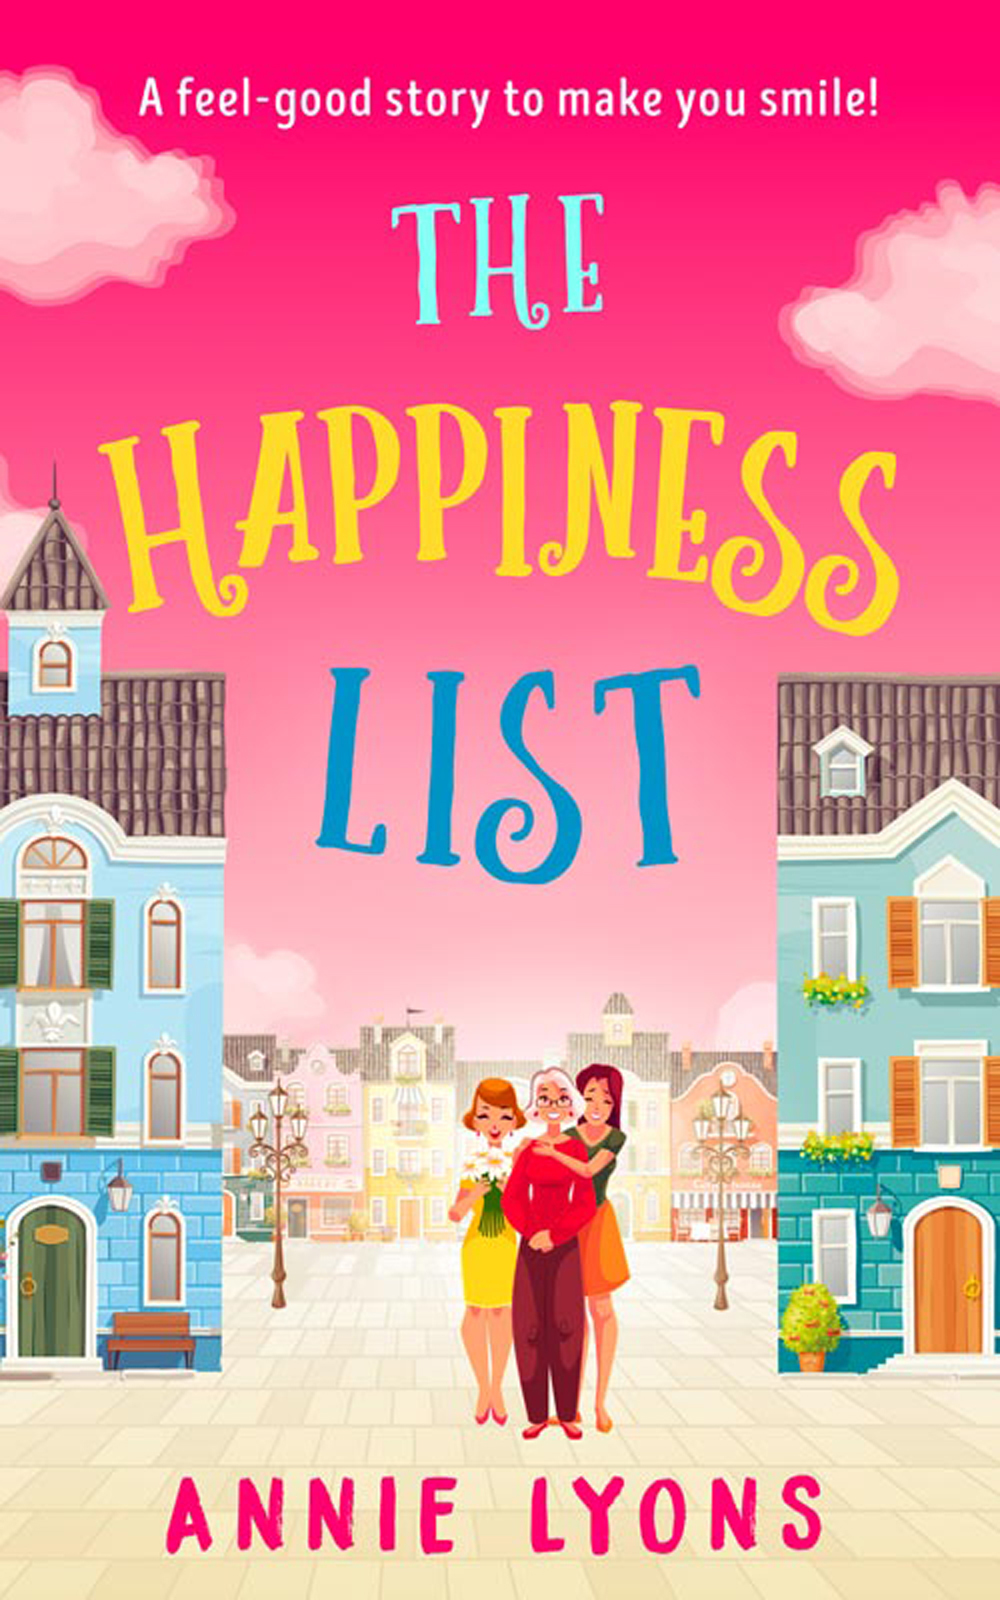 Annie Lyons The Happiness List: A wonderfully feel-good story to make you smile this summer! цены